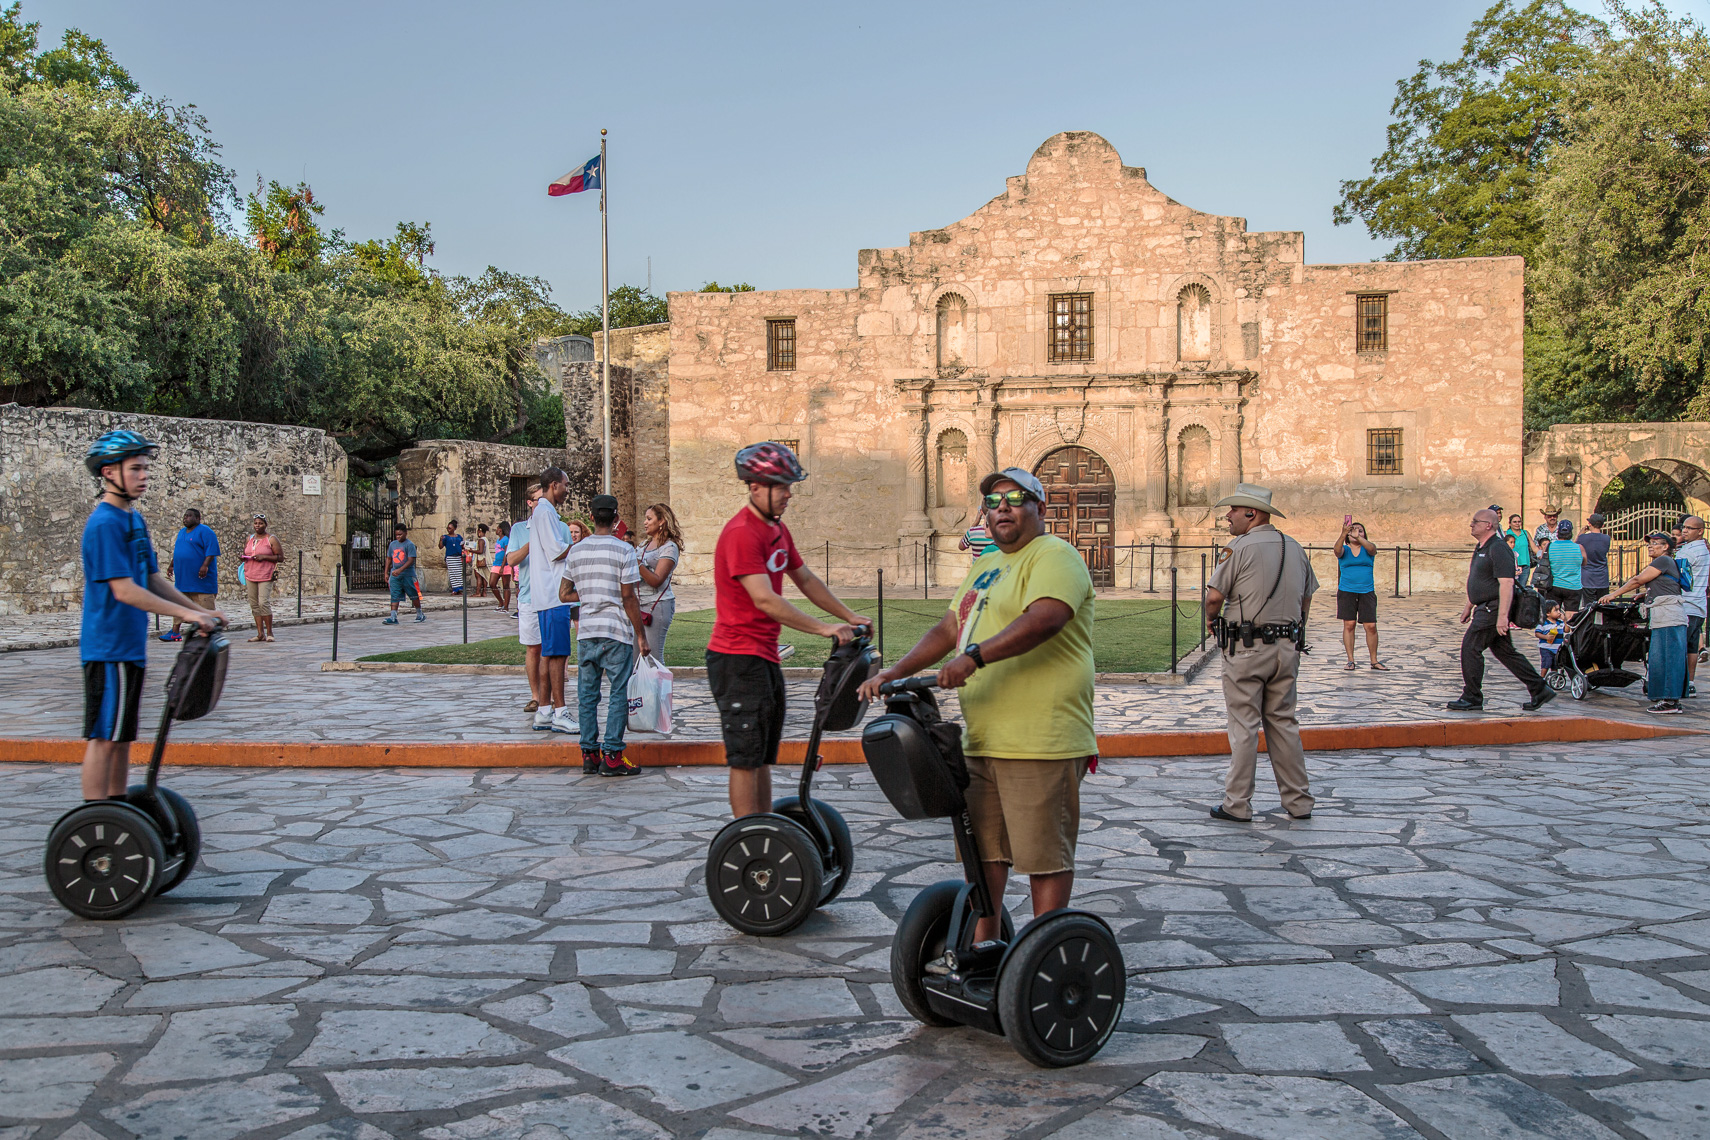 1039Segways attack The Alamo, San Antonio